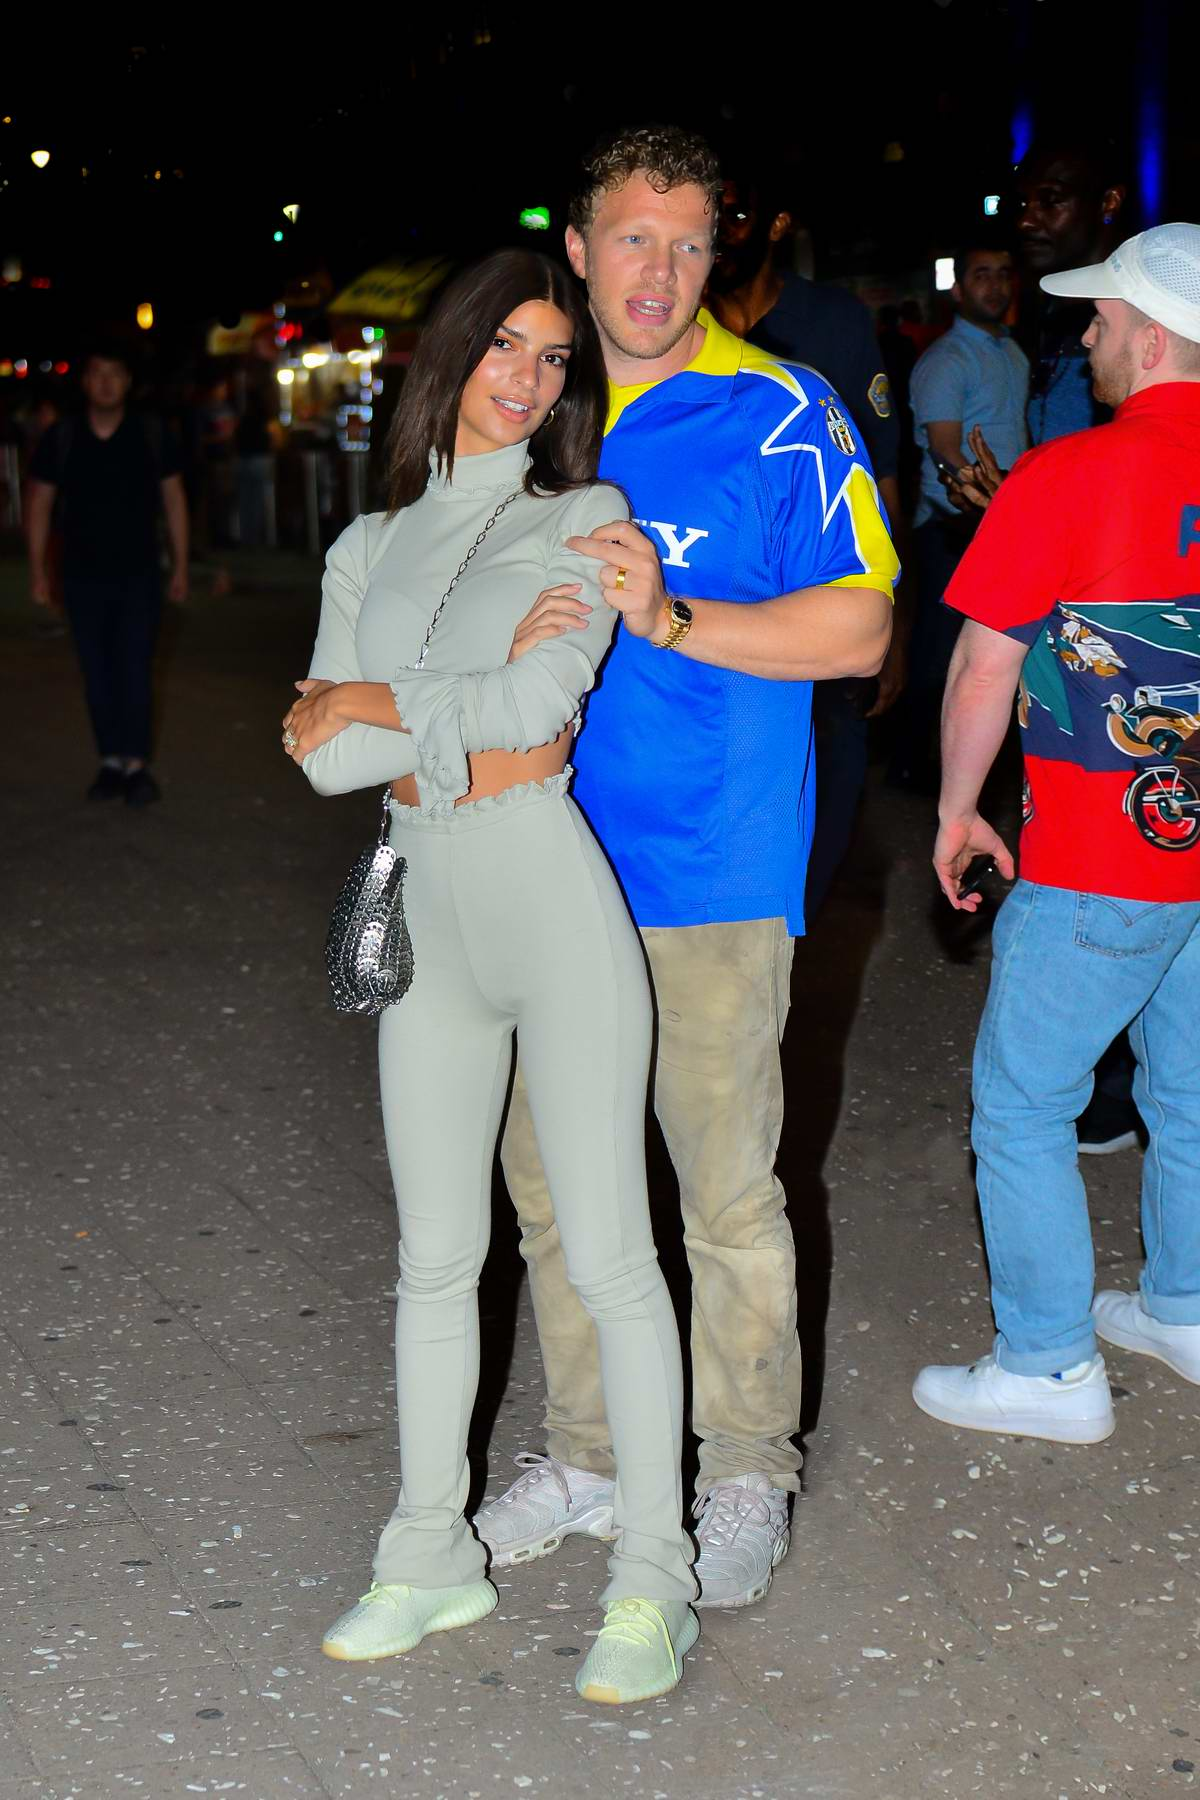 Emily Ratajkowski and husband Sebastian Bear-McClard spotted out after the Drake concert in New York